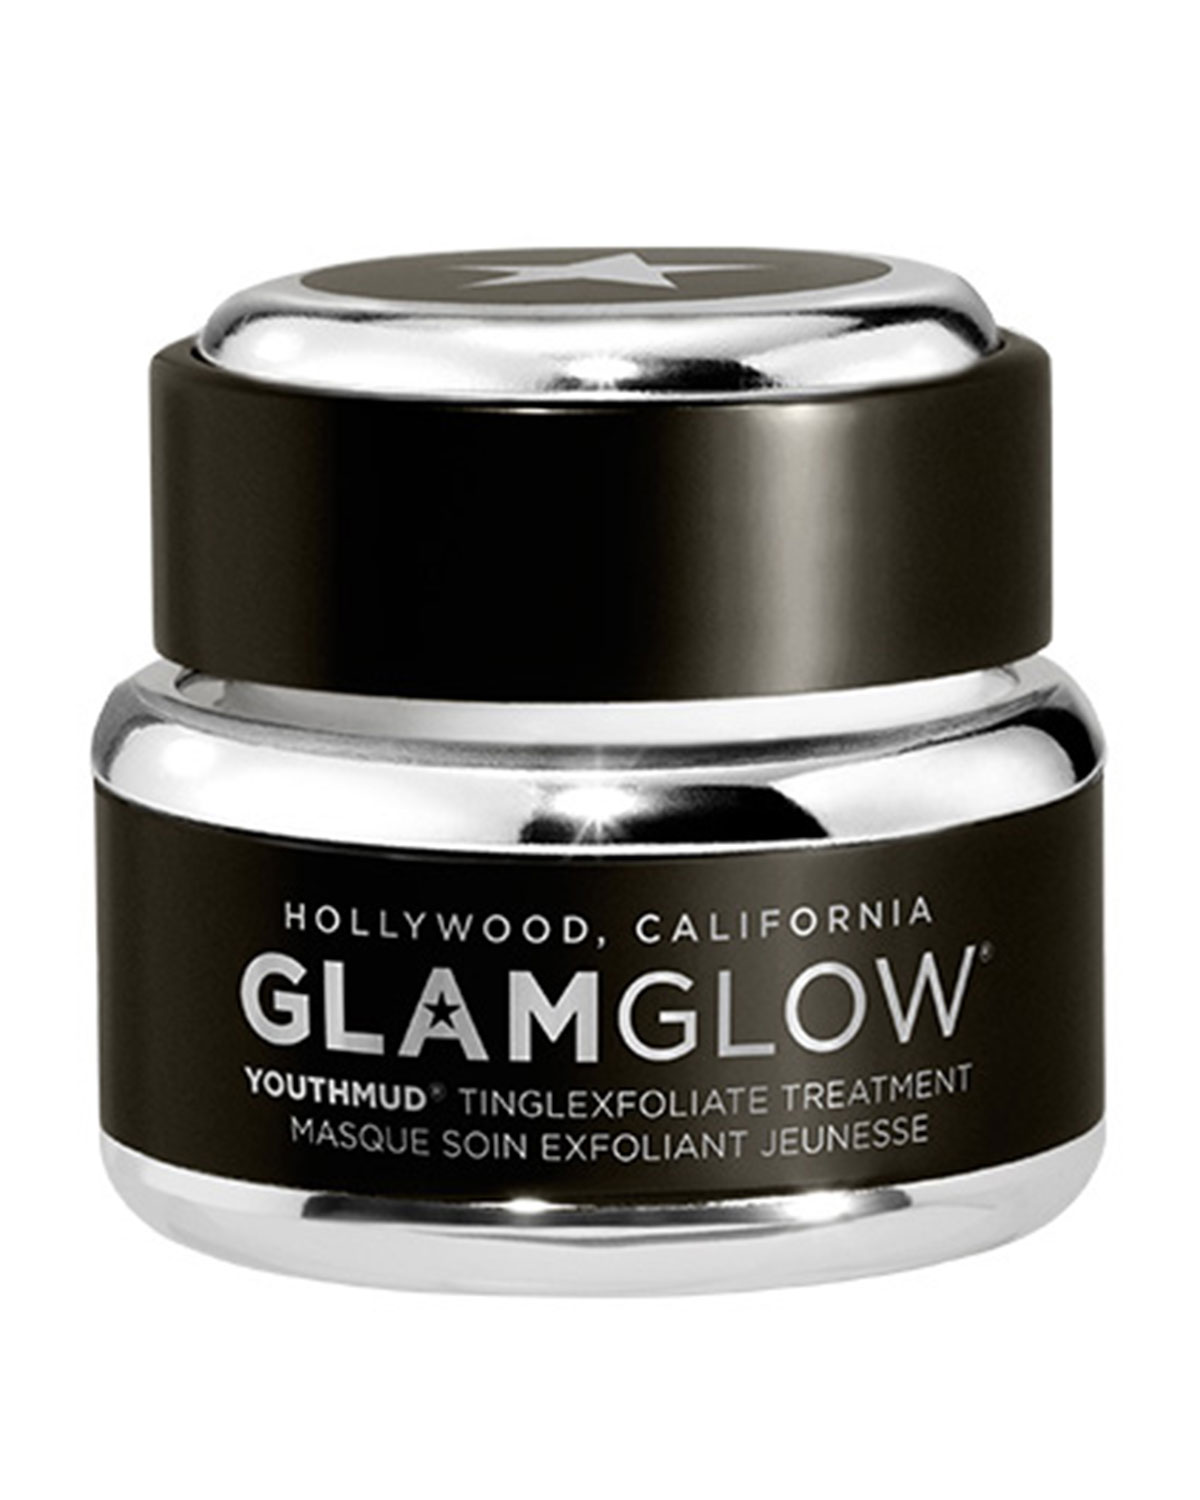 Glamglow YOUTHMUD TINGLEXFOLIATE TREATMENT, 0.5 OZ./ 15G